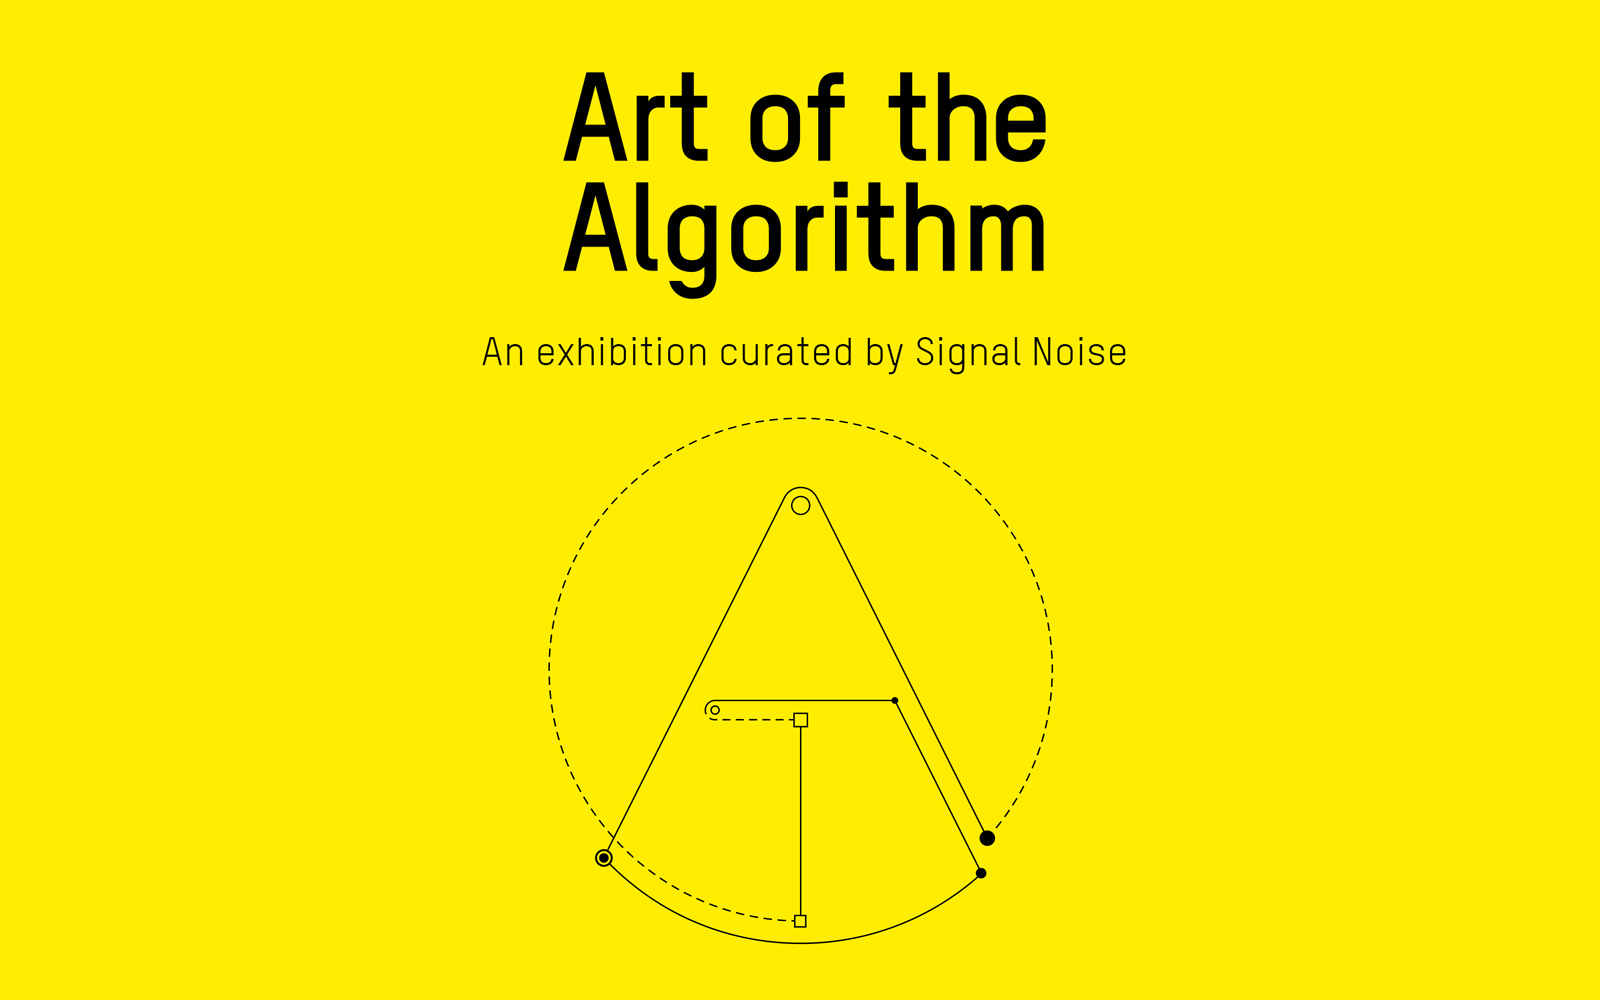 signa-noise-art-of-the-algorithm_00